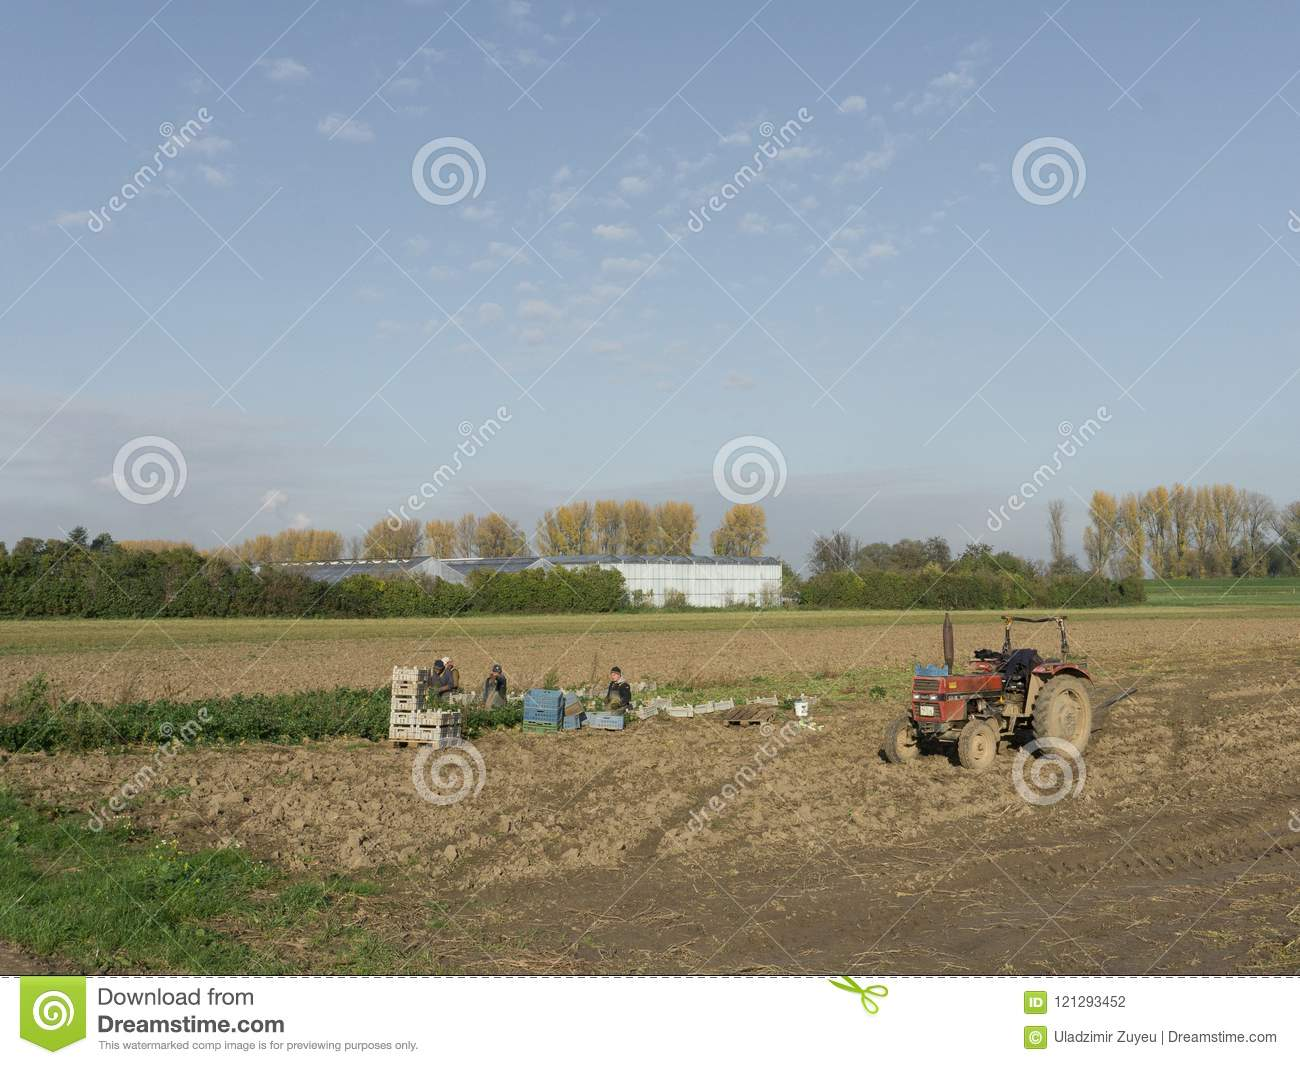 Polish farmers work in the vegetable fields